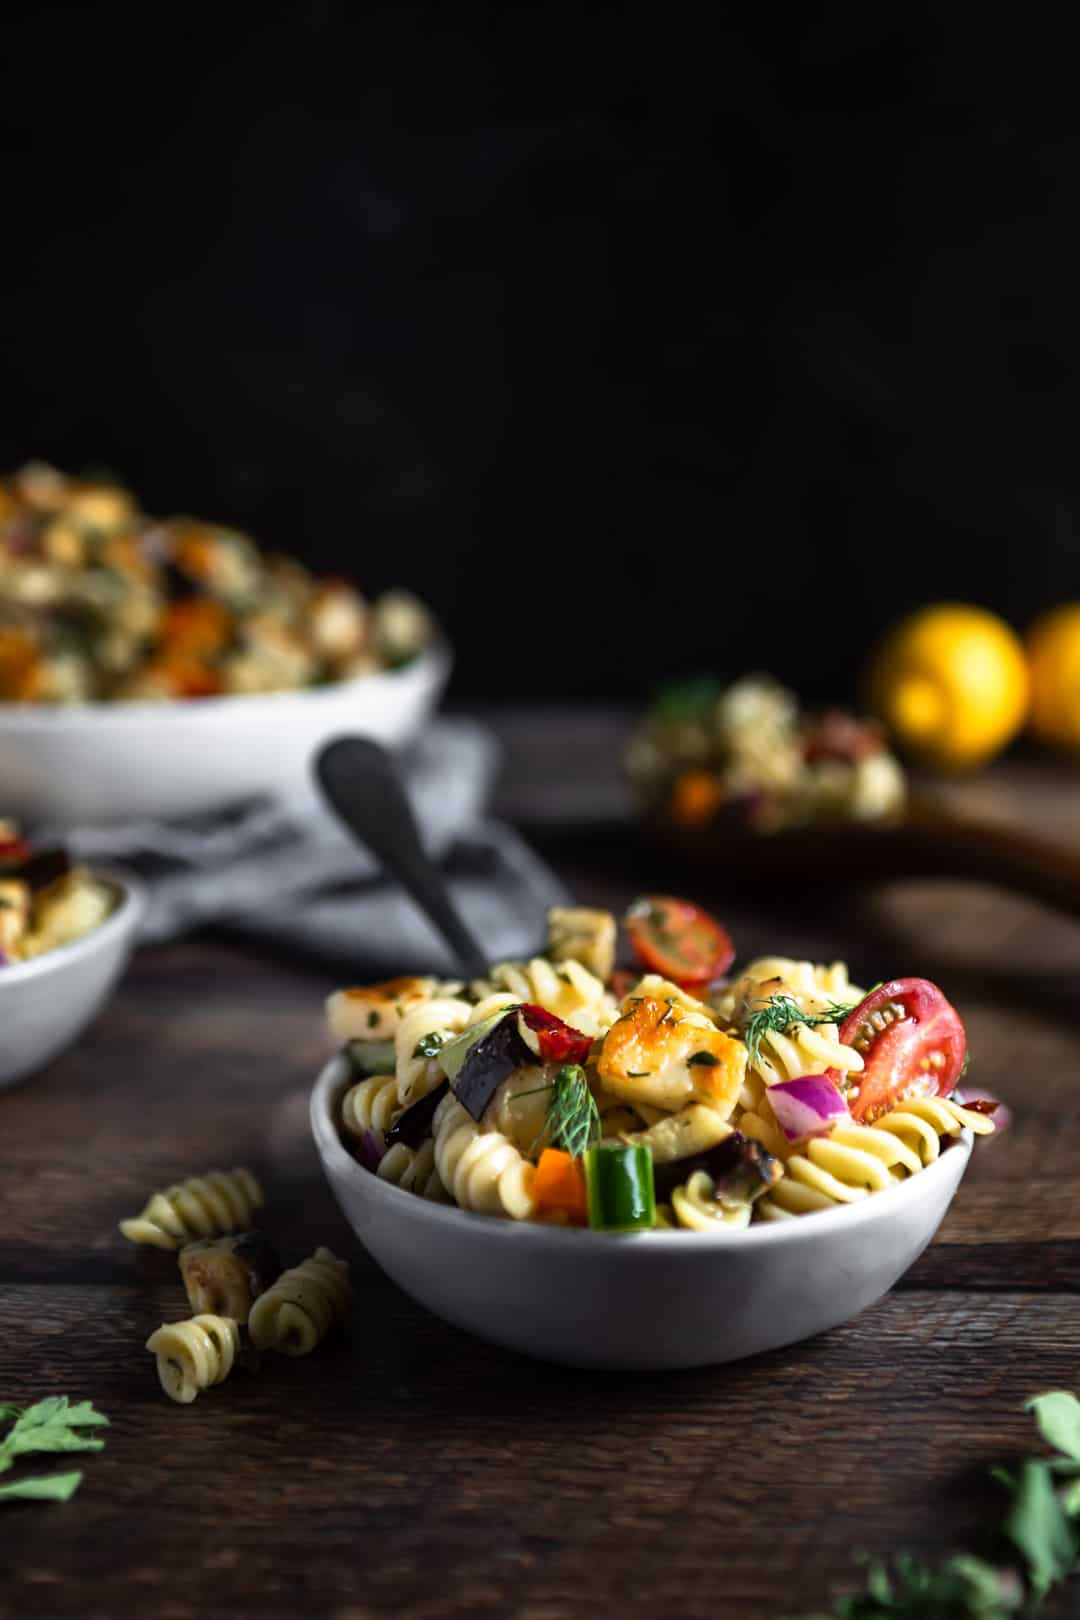 A small dish filled with Halloumi pasta salad with a fork in it and a few rotini that fell out beside the dish. A large serving bowl of the pasta salad and lemons are in the background